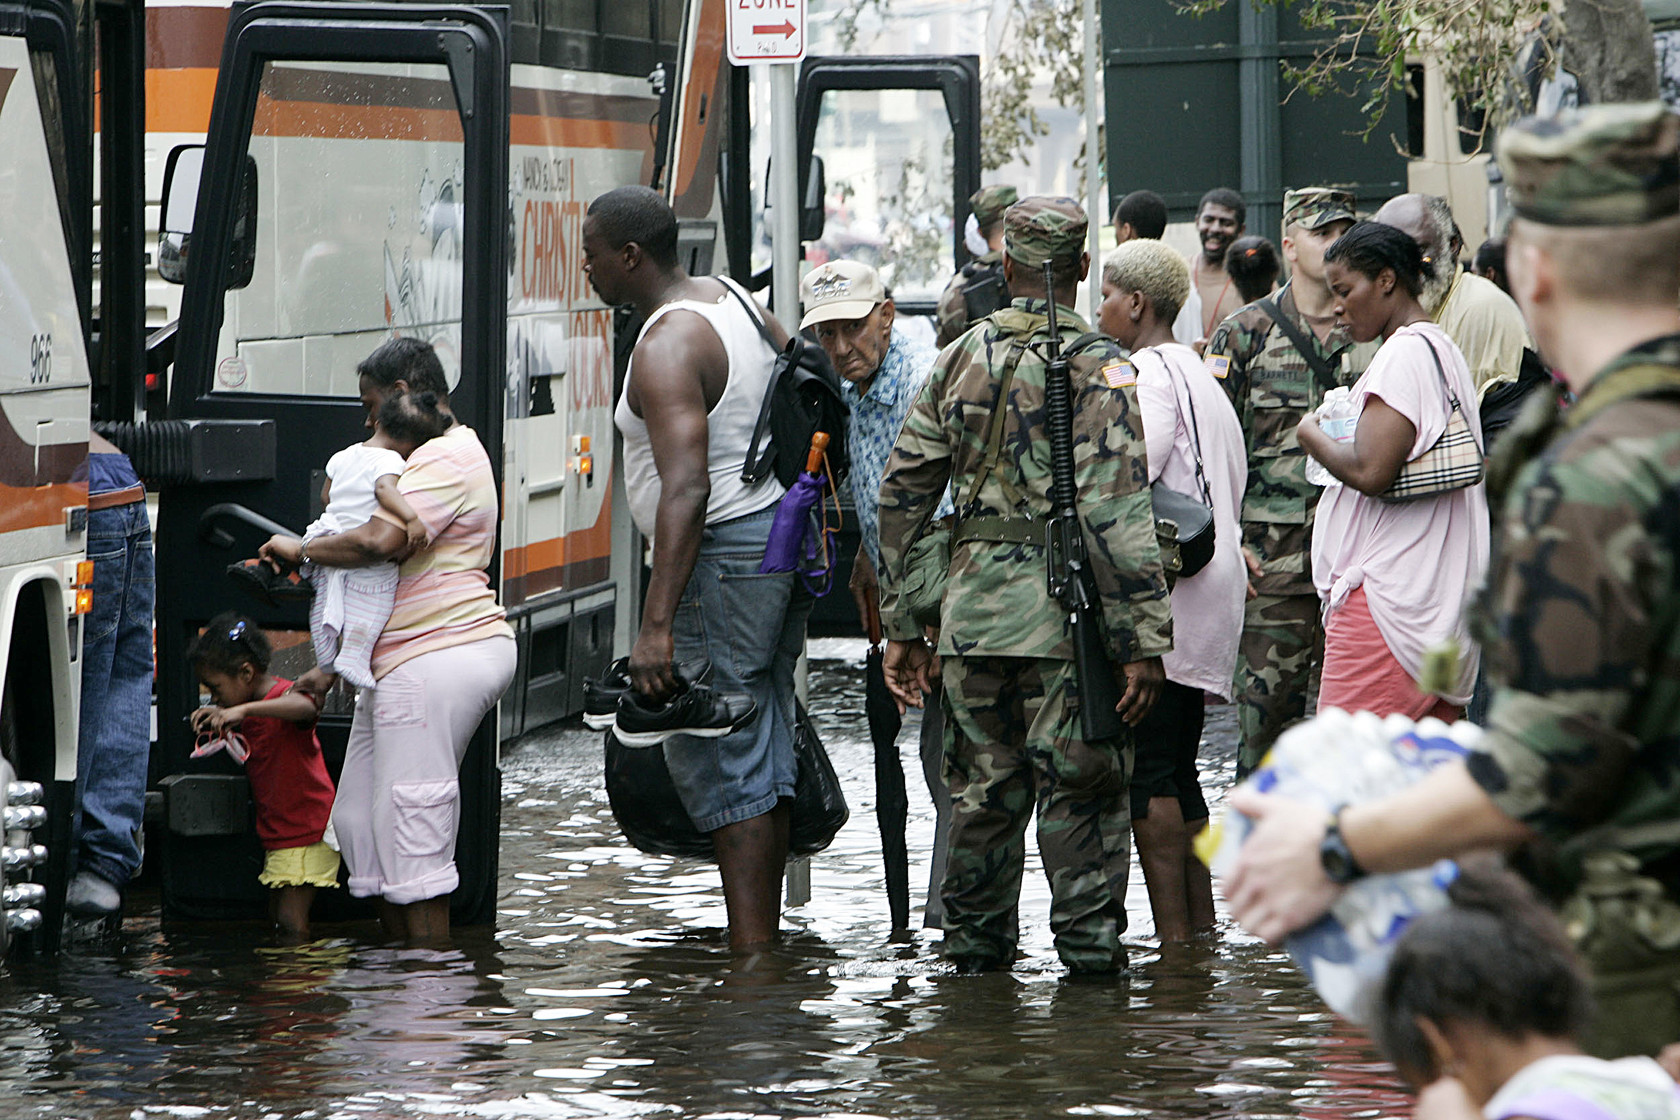 racism hurricane katrina essay Did hurricane katrina expose racism in america (a case study) before beginning this case study, hurricane katrina was a force of nature that ravaged the city of new orleans, louisiana in 2005 leaving thousands of african americans homeless and impoverished.